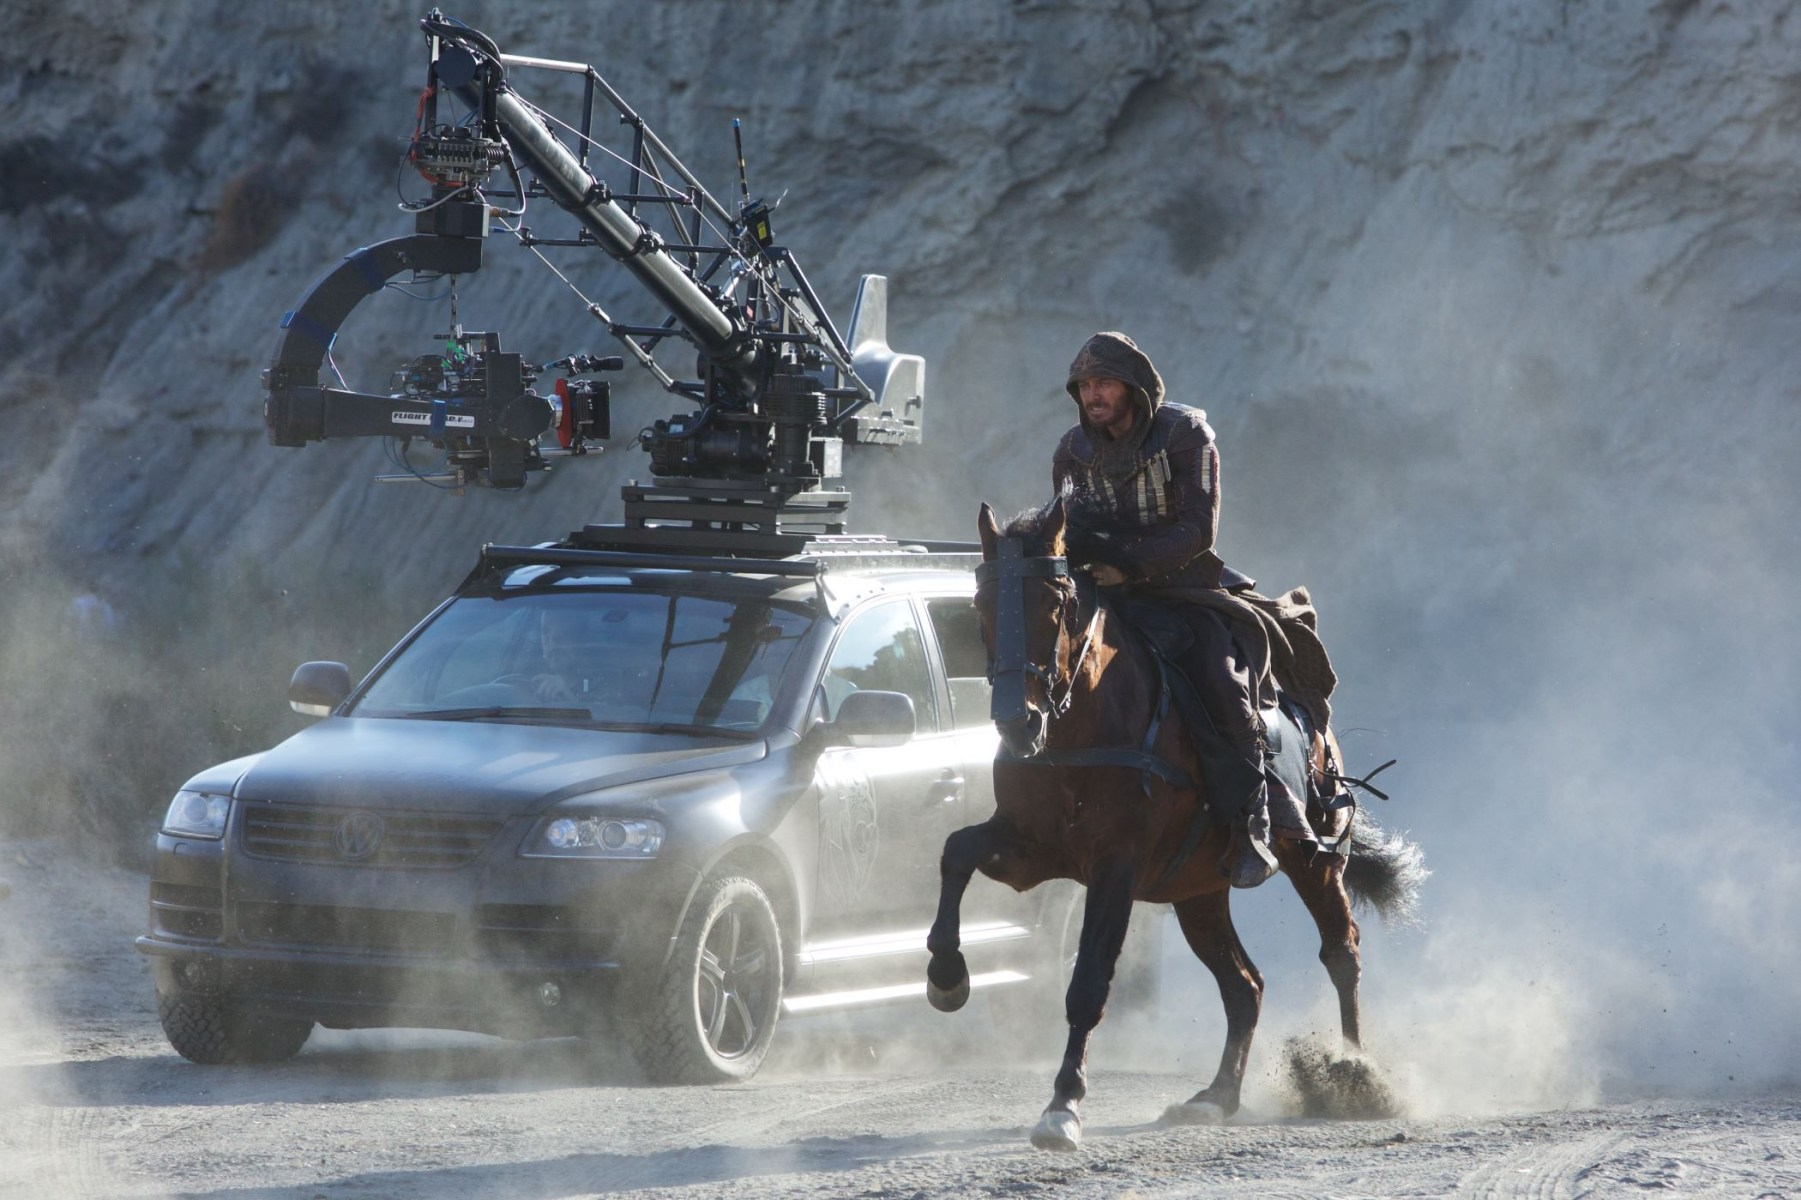 Filming Assassin's Creed (2016) Behind the Scenes